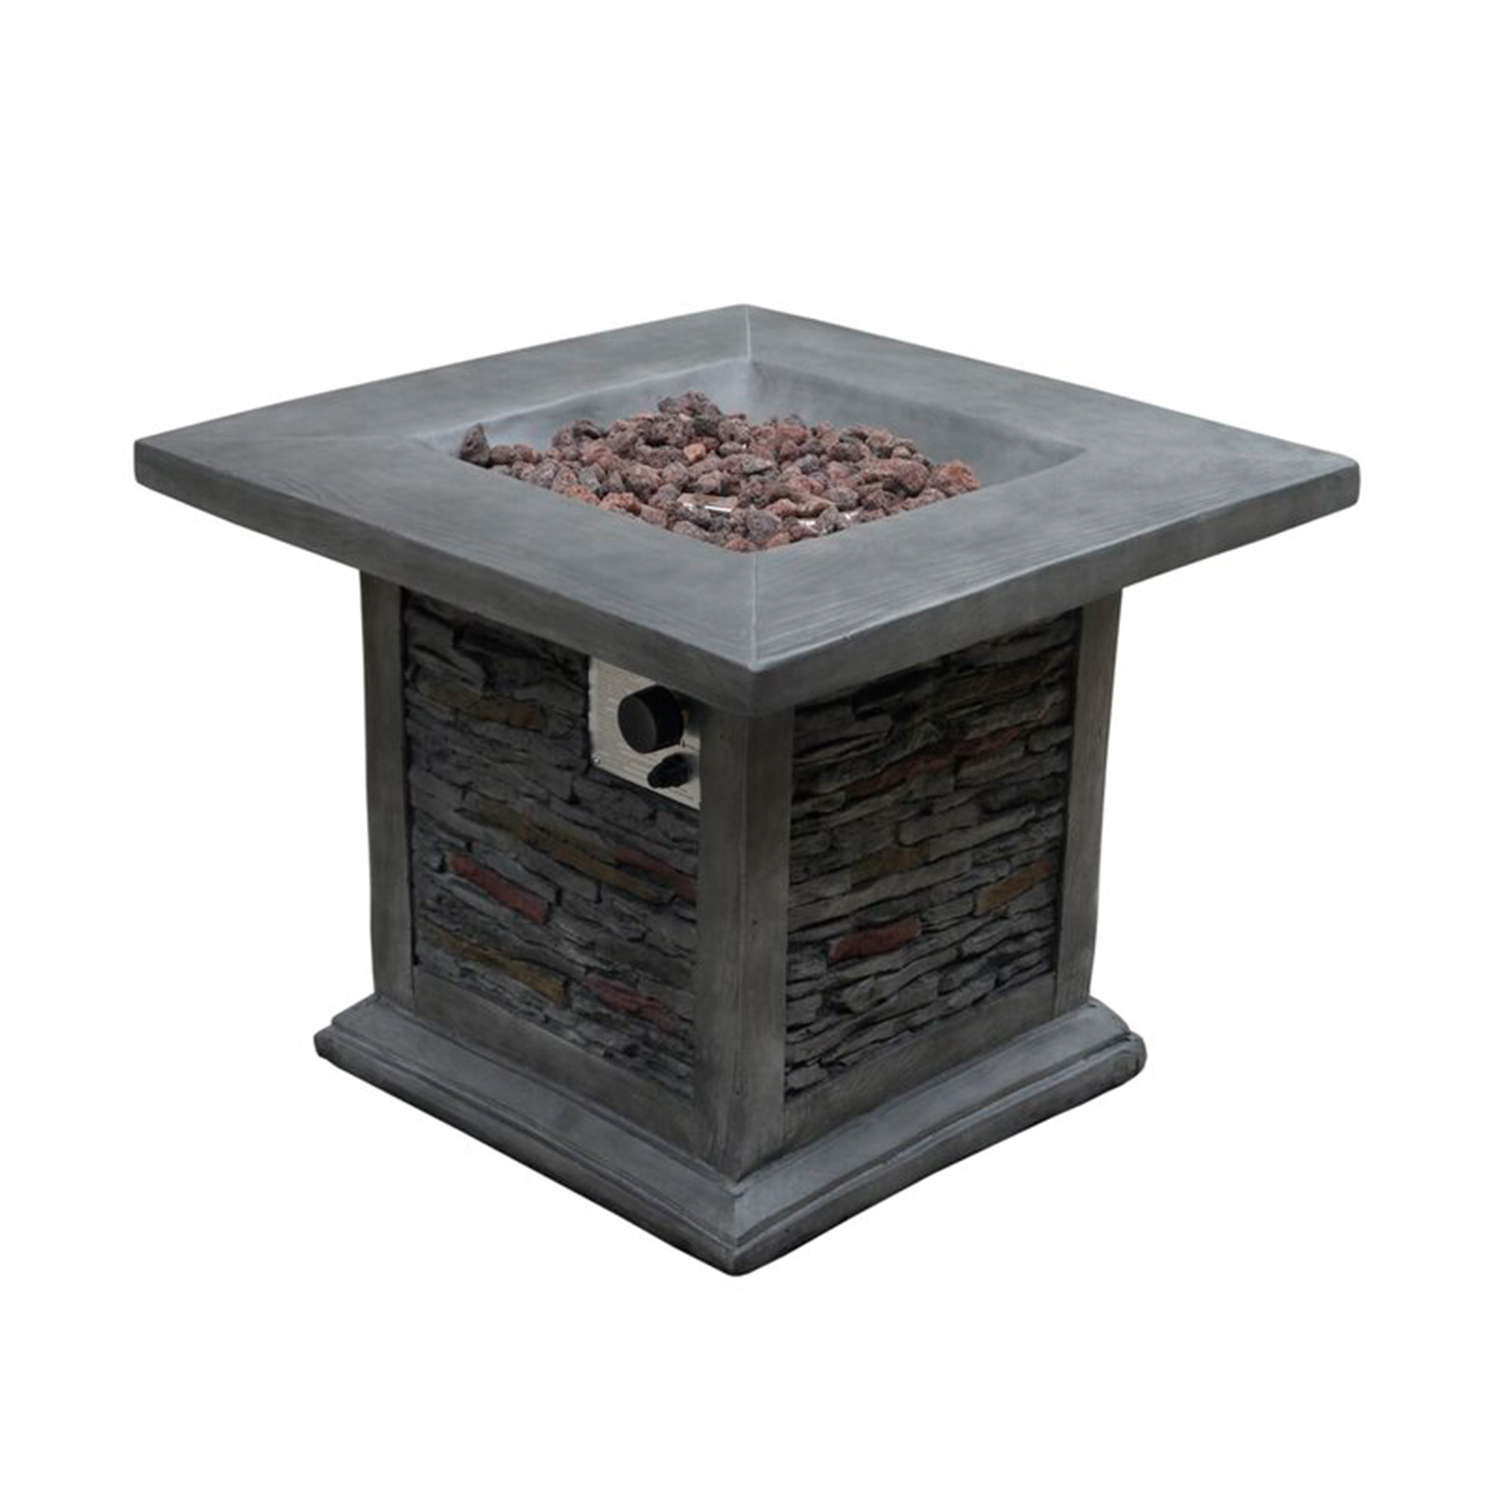 Bettine Stone Propane Gas Fire Pit Table